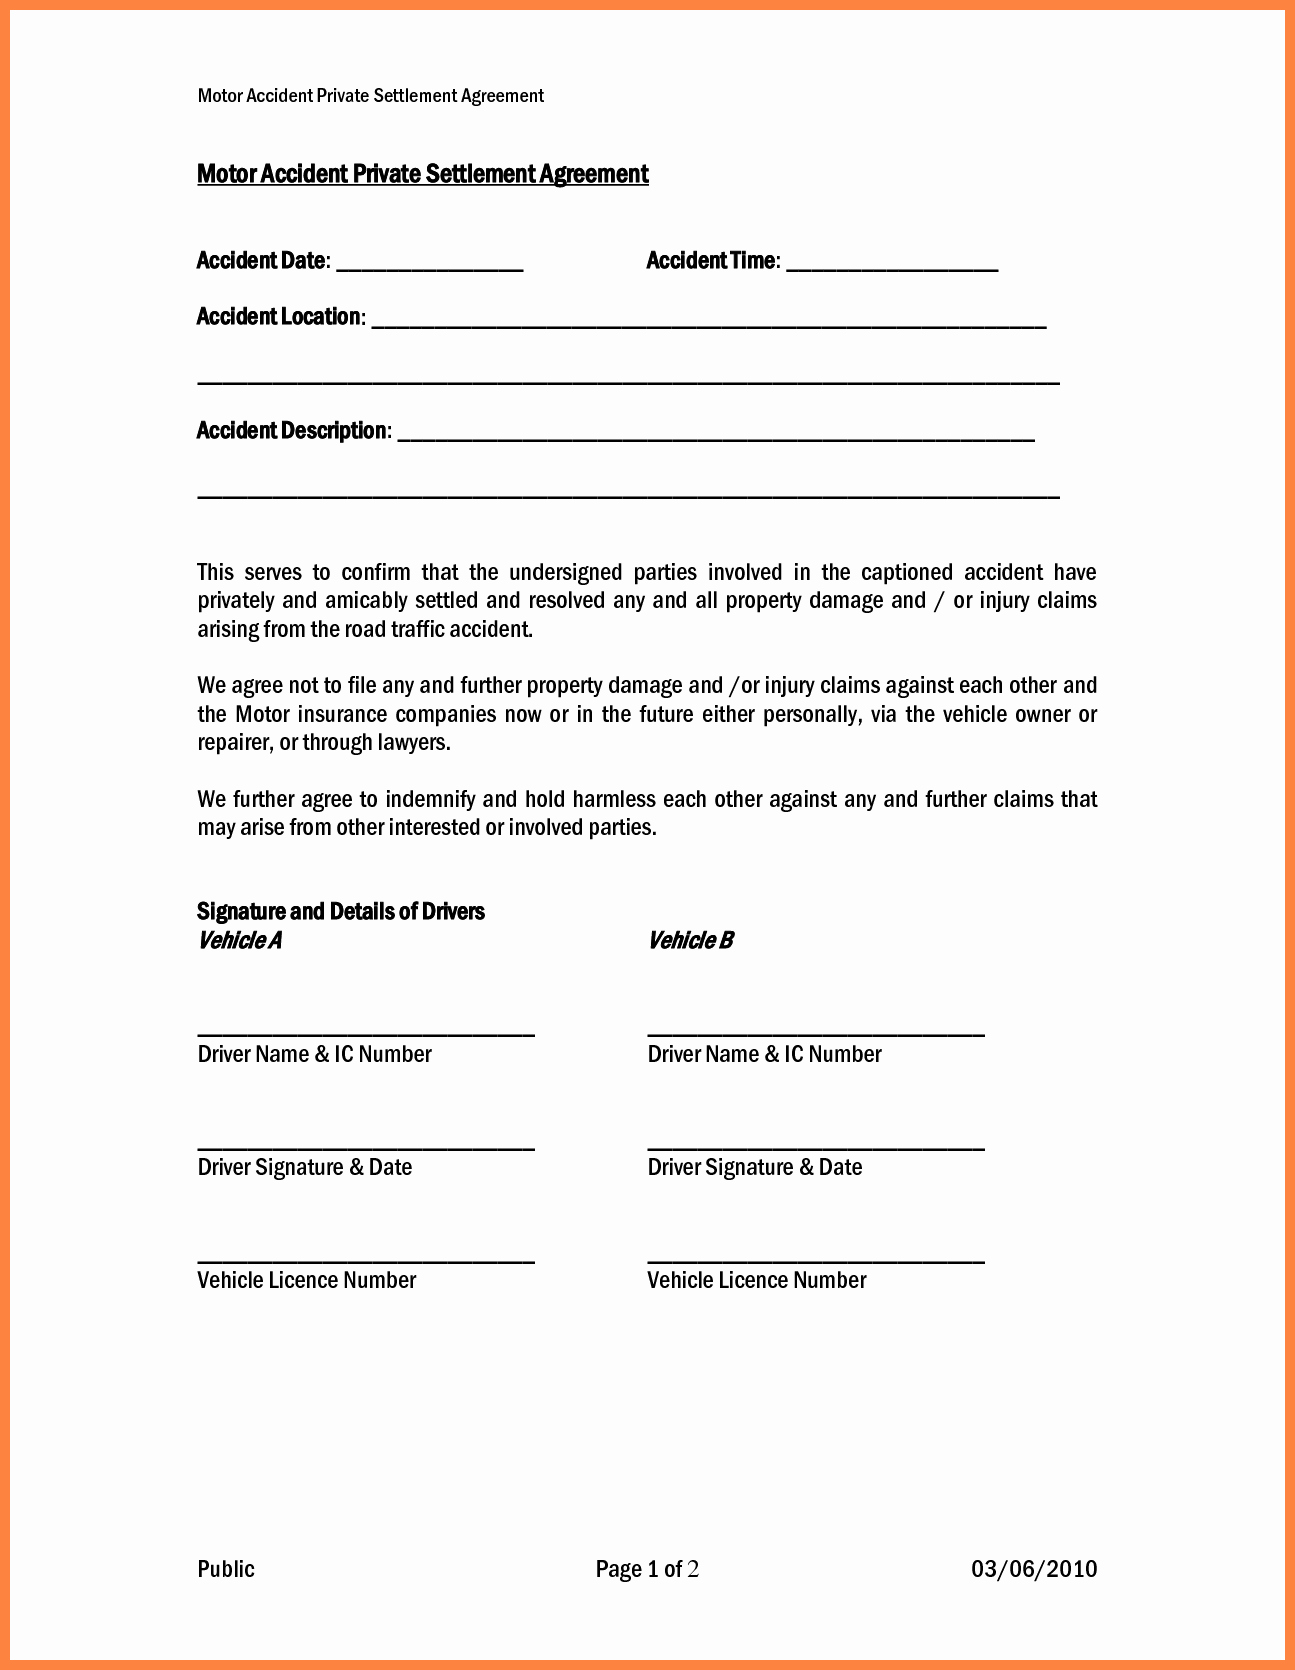 Private Child Support Agreement Template Awesome 5 Car Accident Settlement Calculator